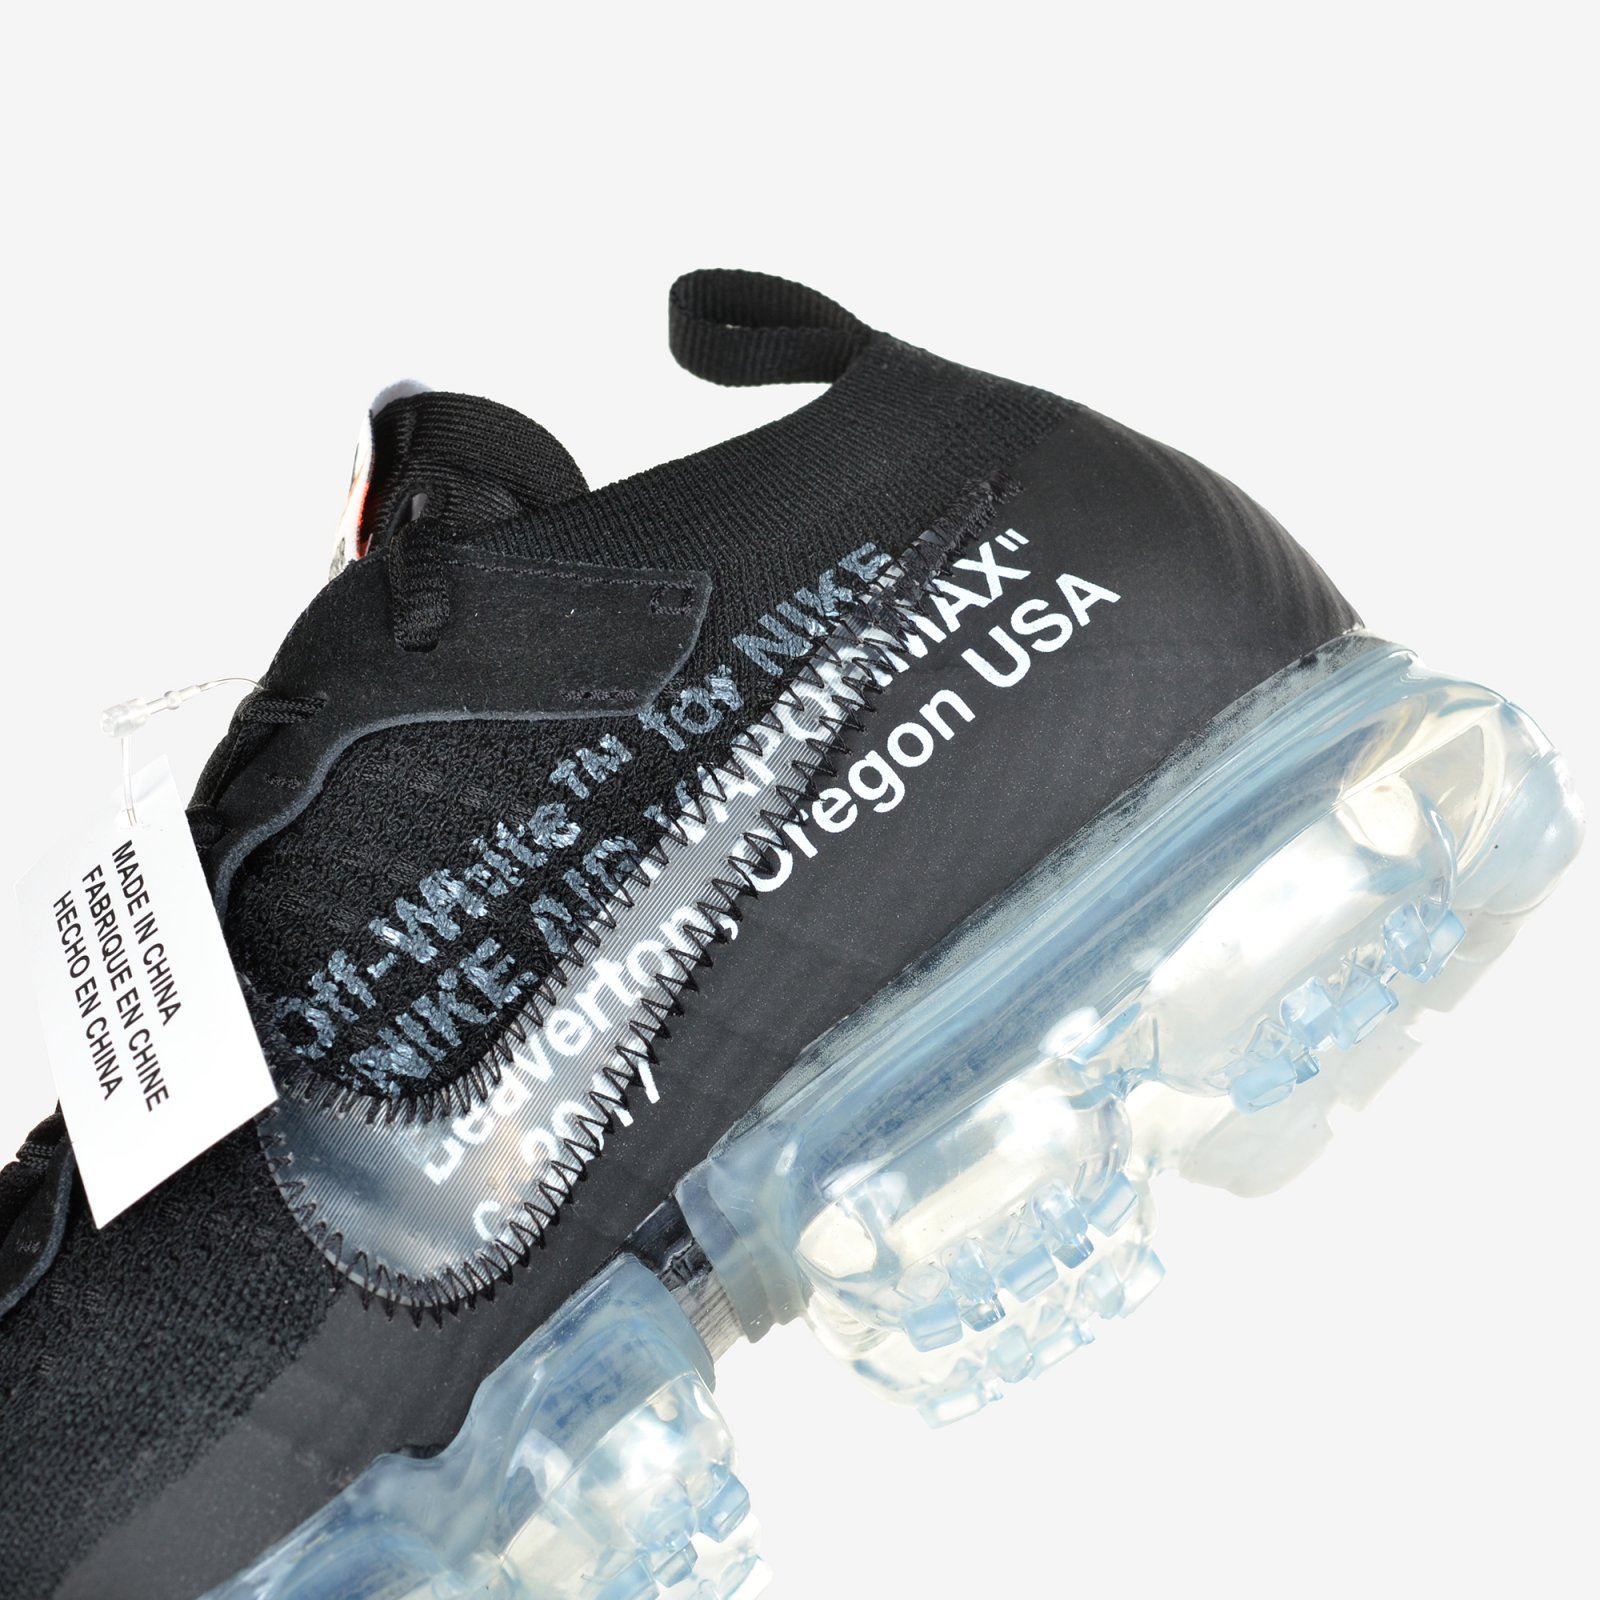 09959f6cf97 Details about The 10 Nike Air Vapormax FK Off White Black Clear Total  Orange New DS AA3831-002